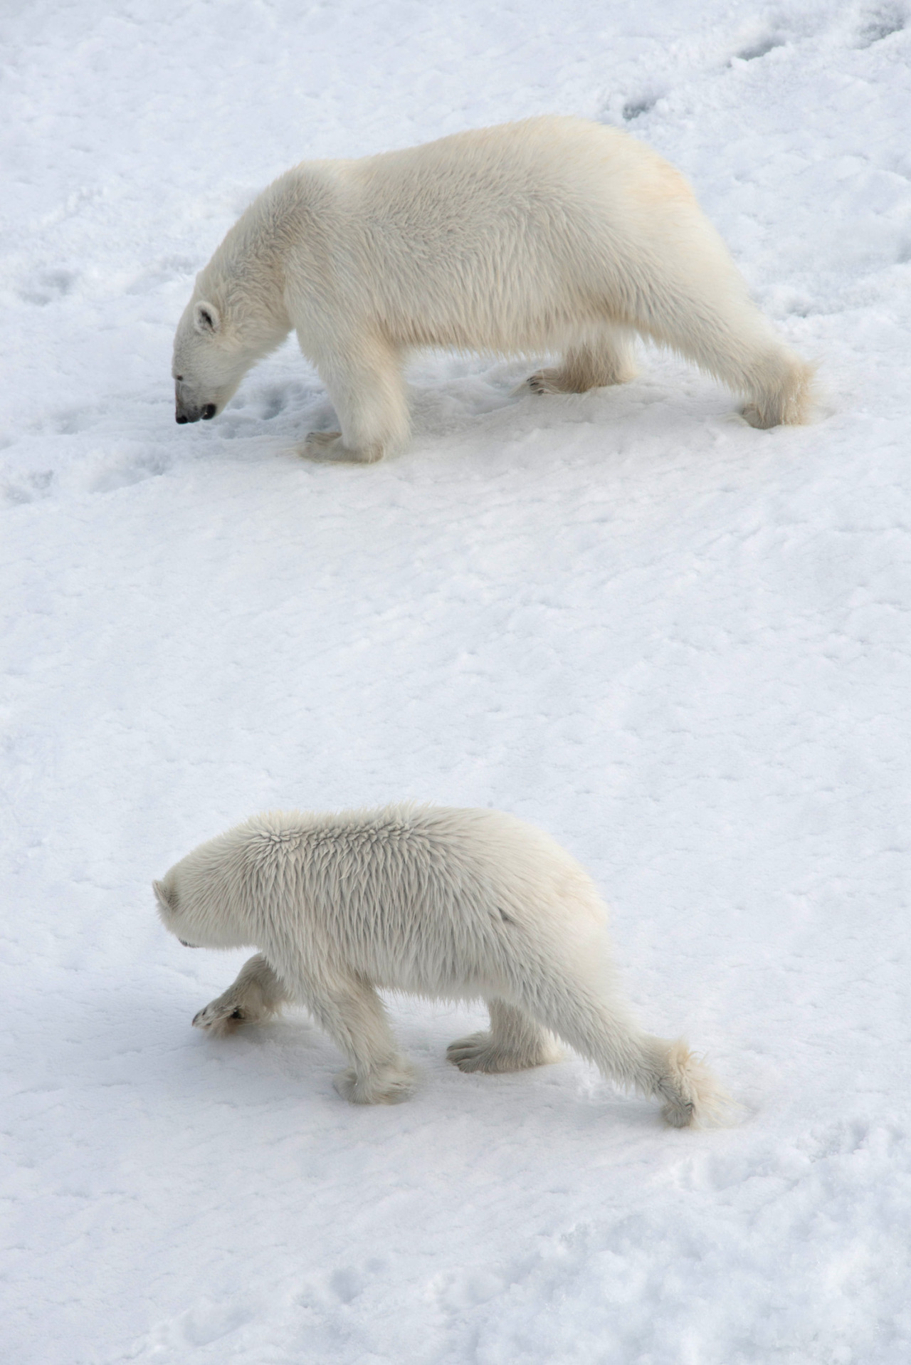 The beautiful polar bears exploring